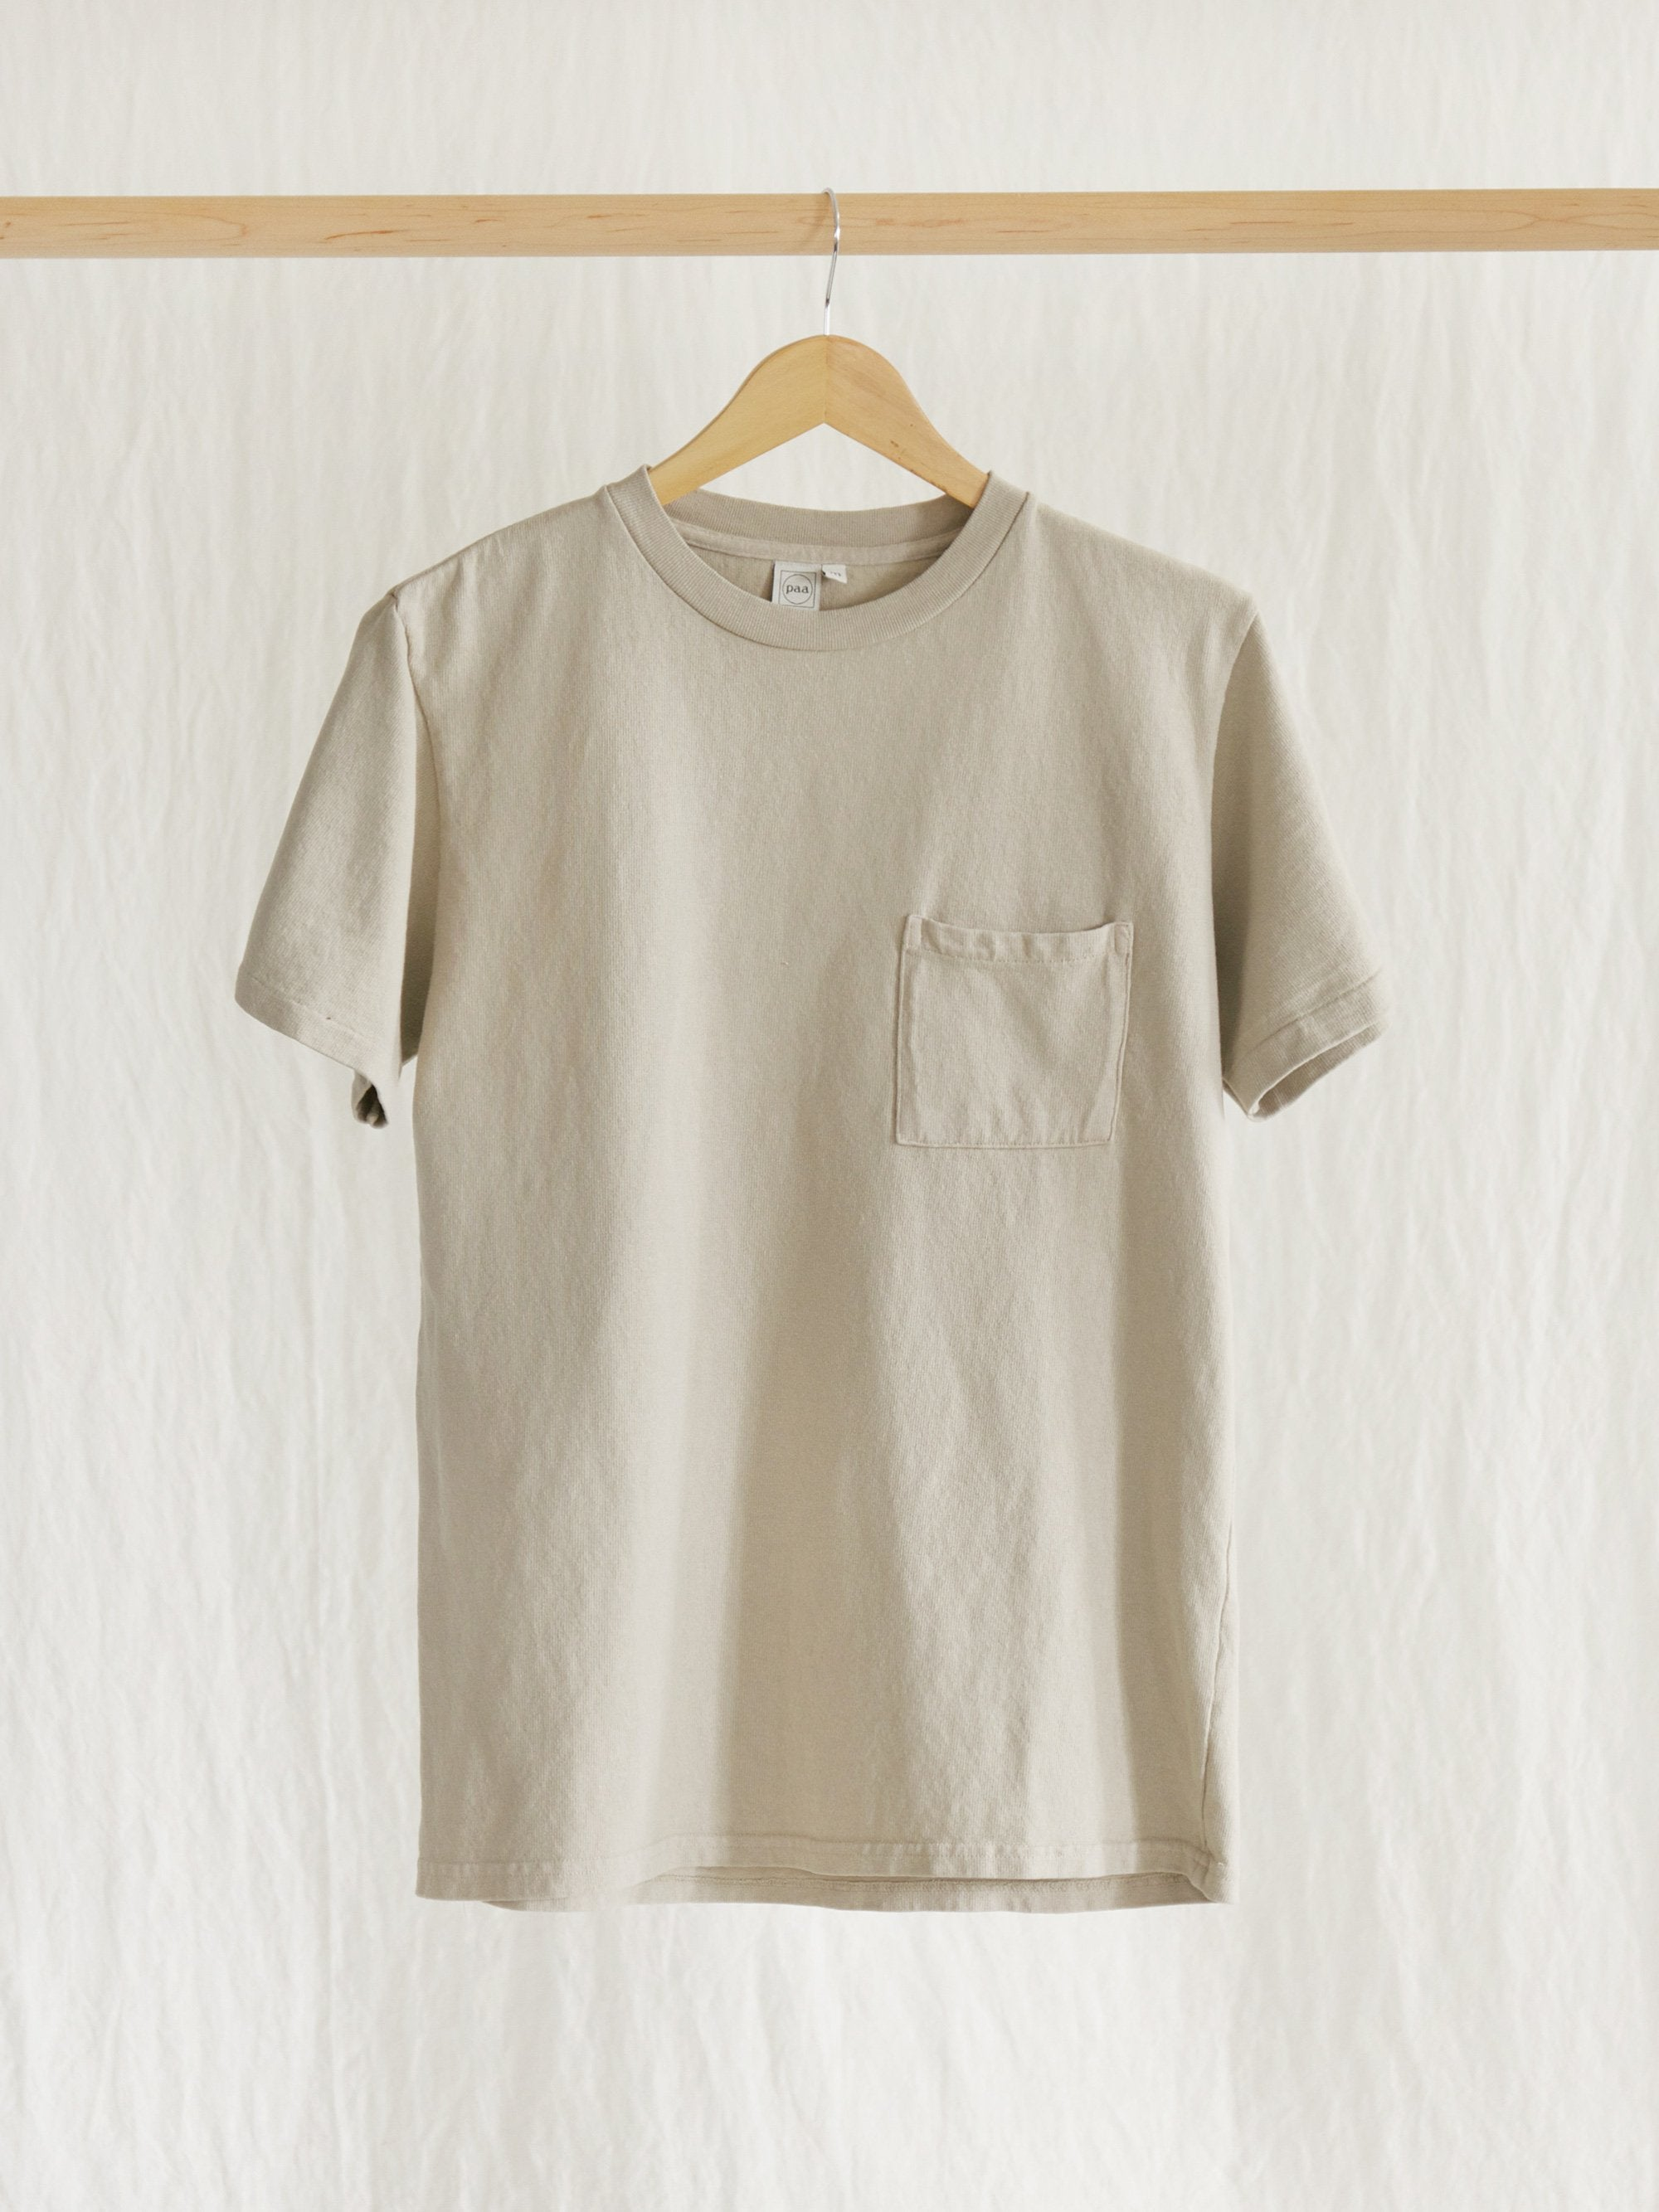 Namu Shop - paa SS Pocket Tee - Stone